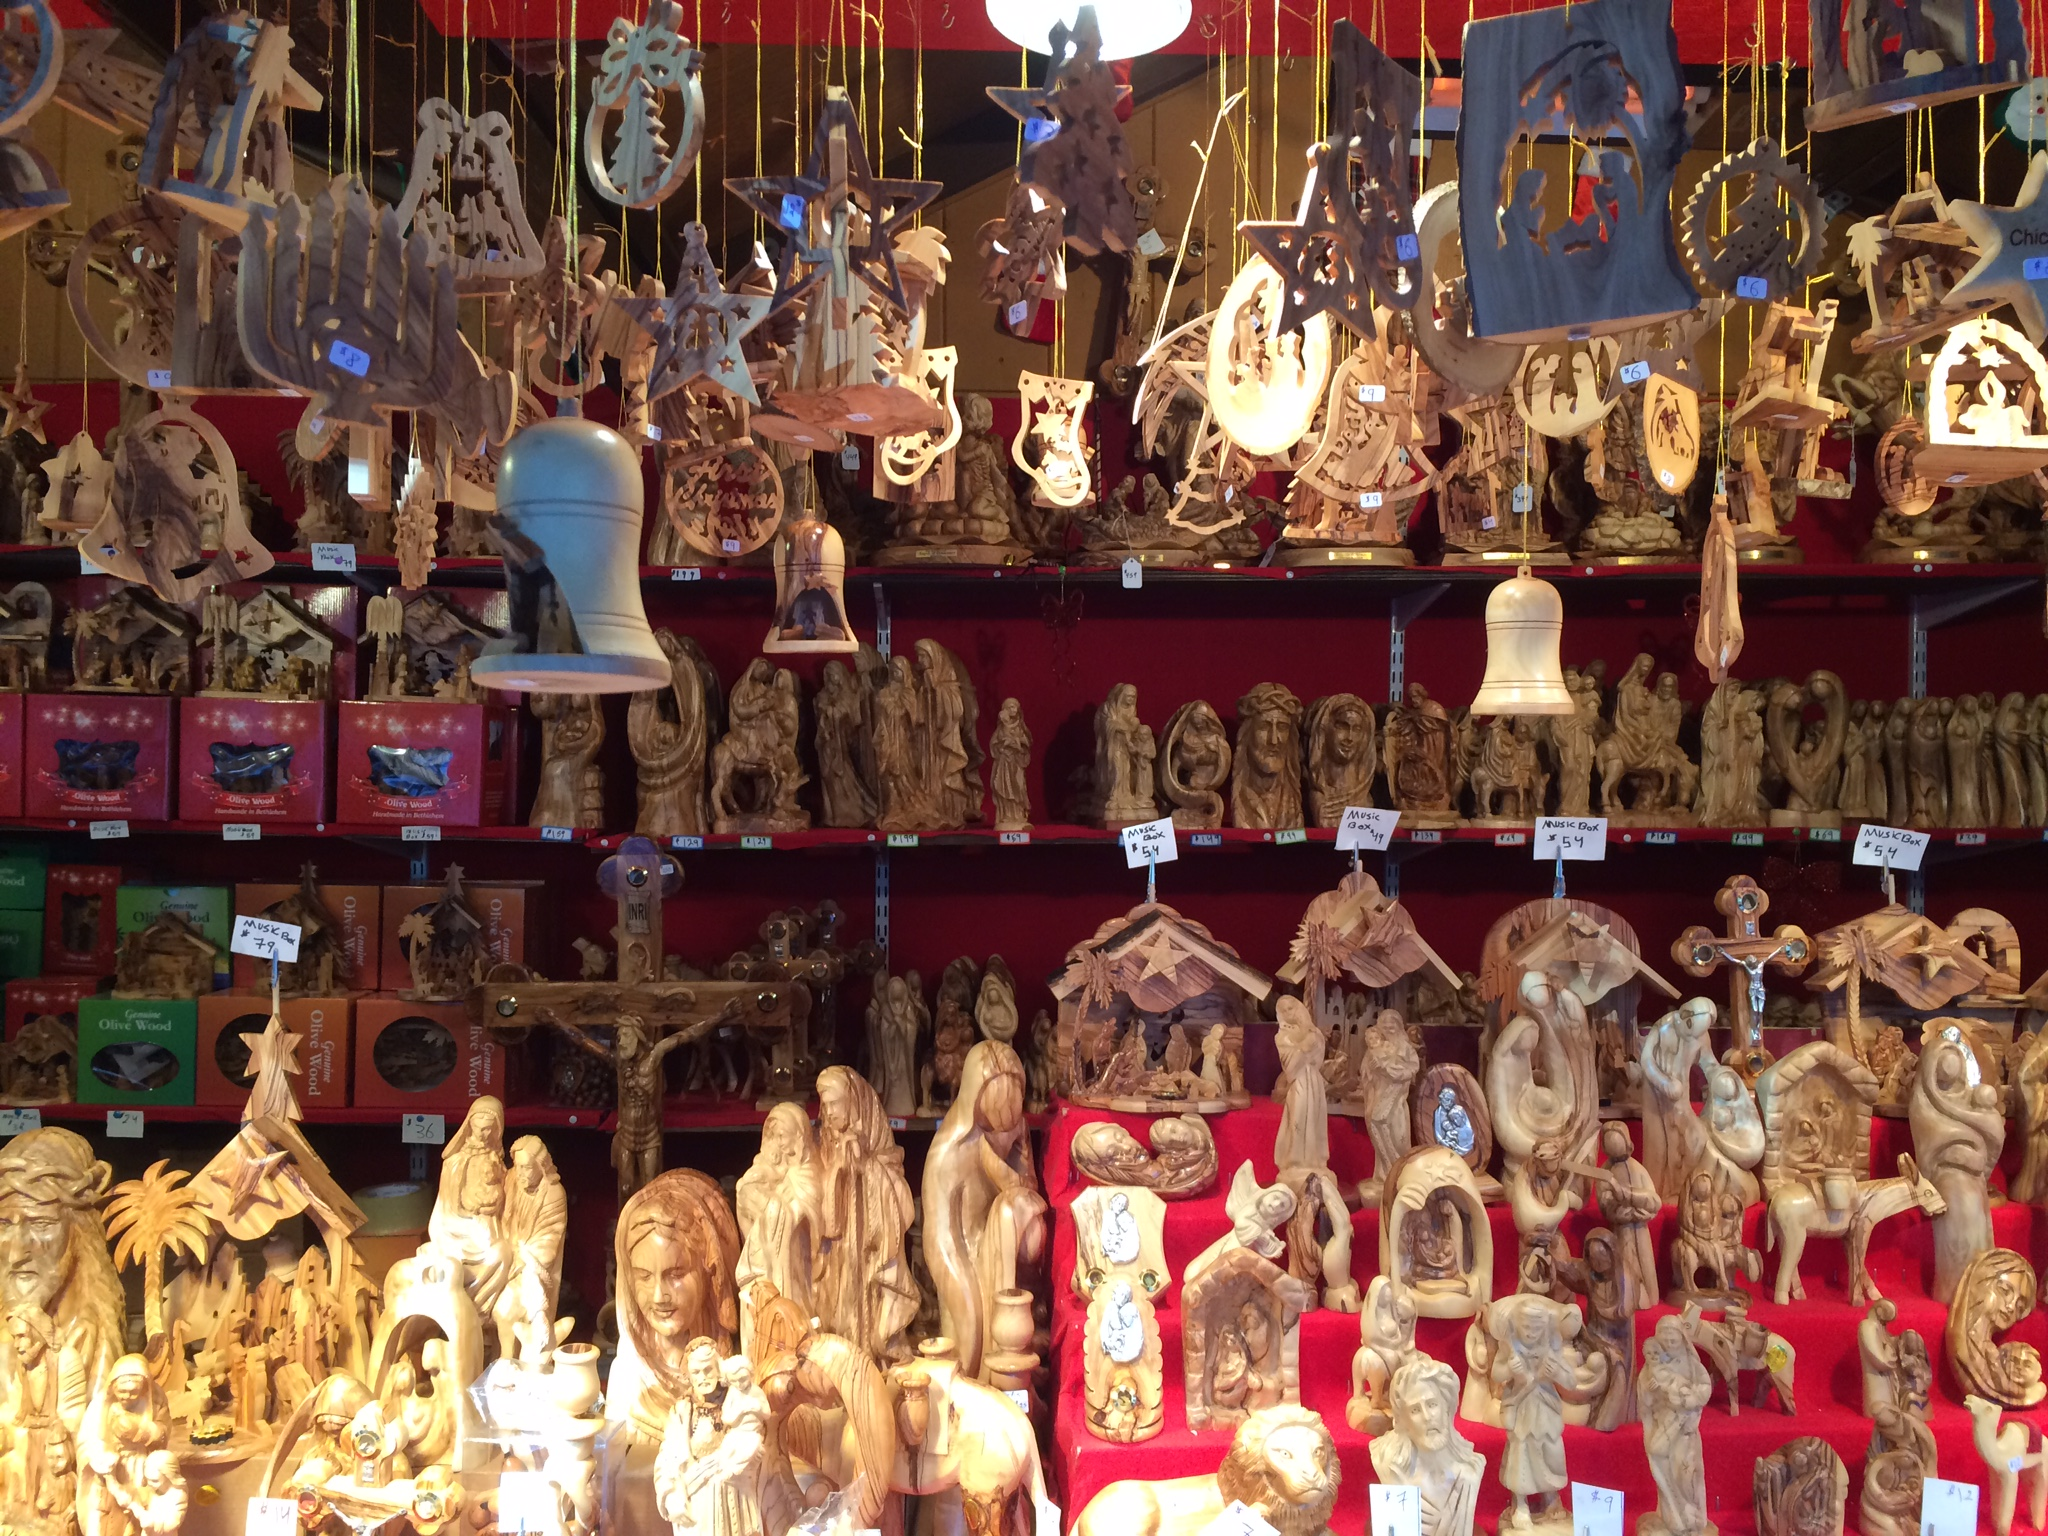 Figures and Ornaments from Bethlehem Nativity Products | © Benita Gingerella